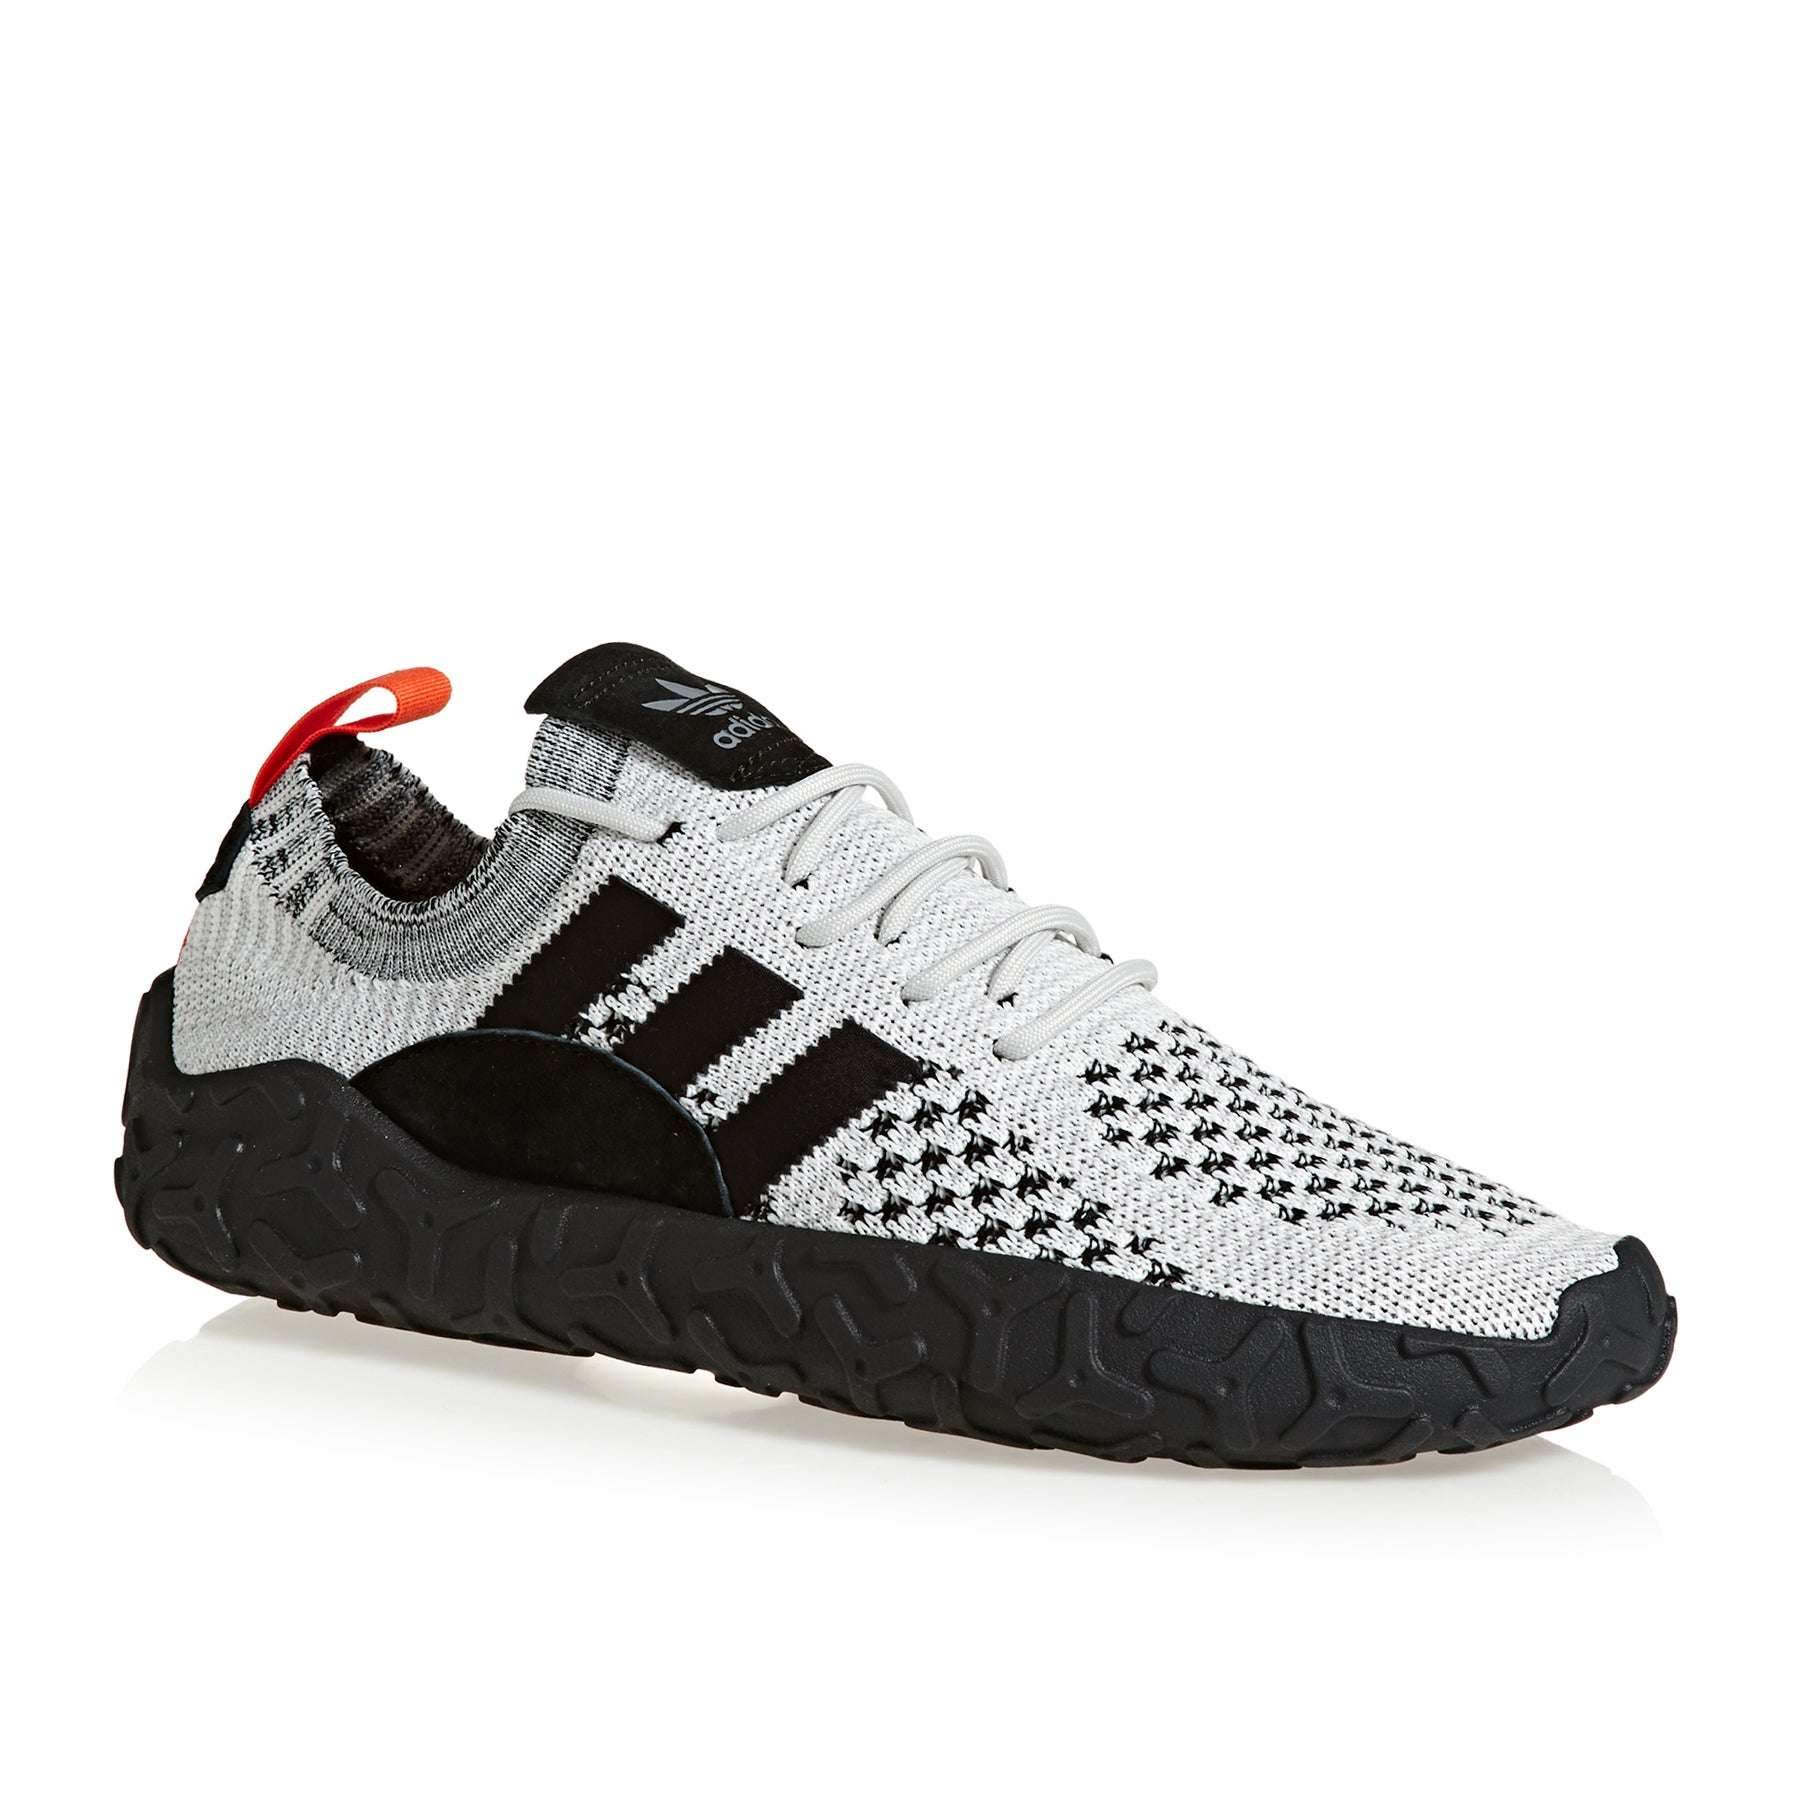 Adidas Originals F/22 Prime Knit Shoes